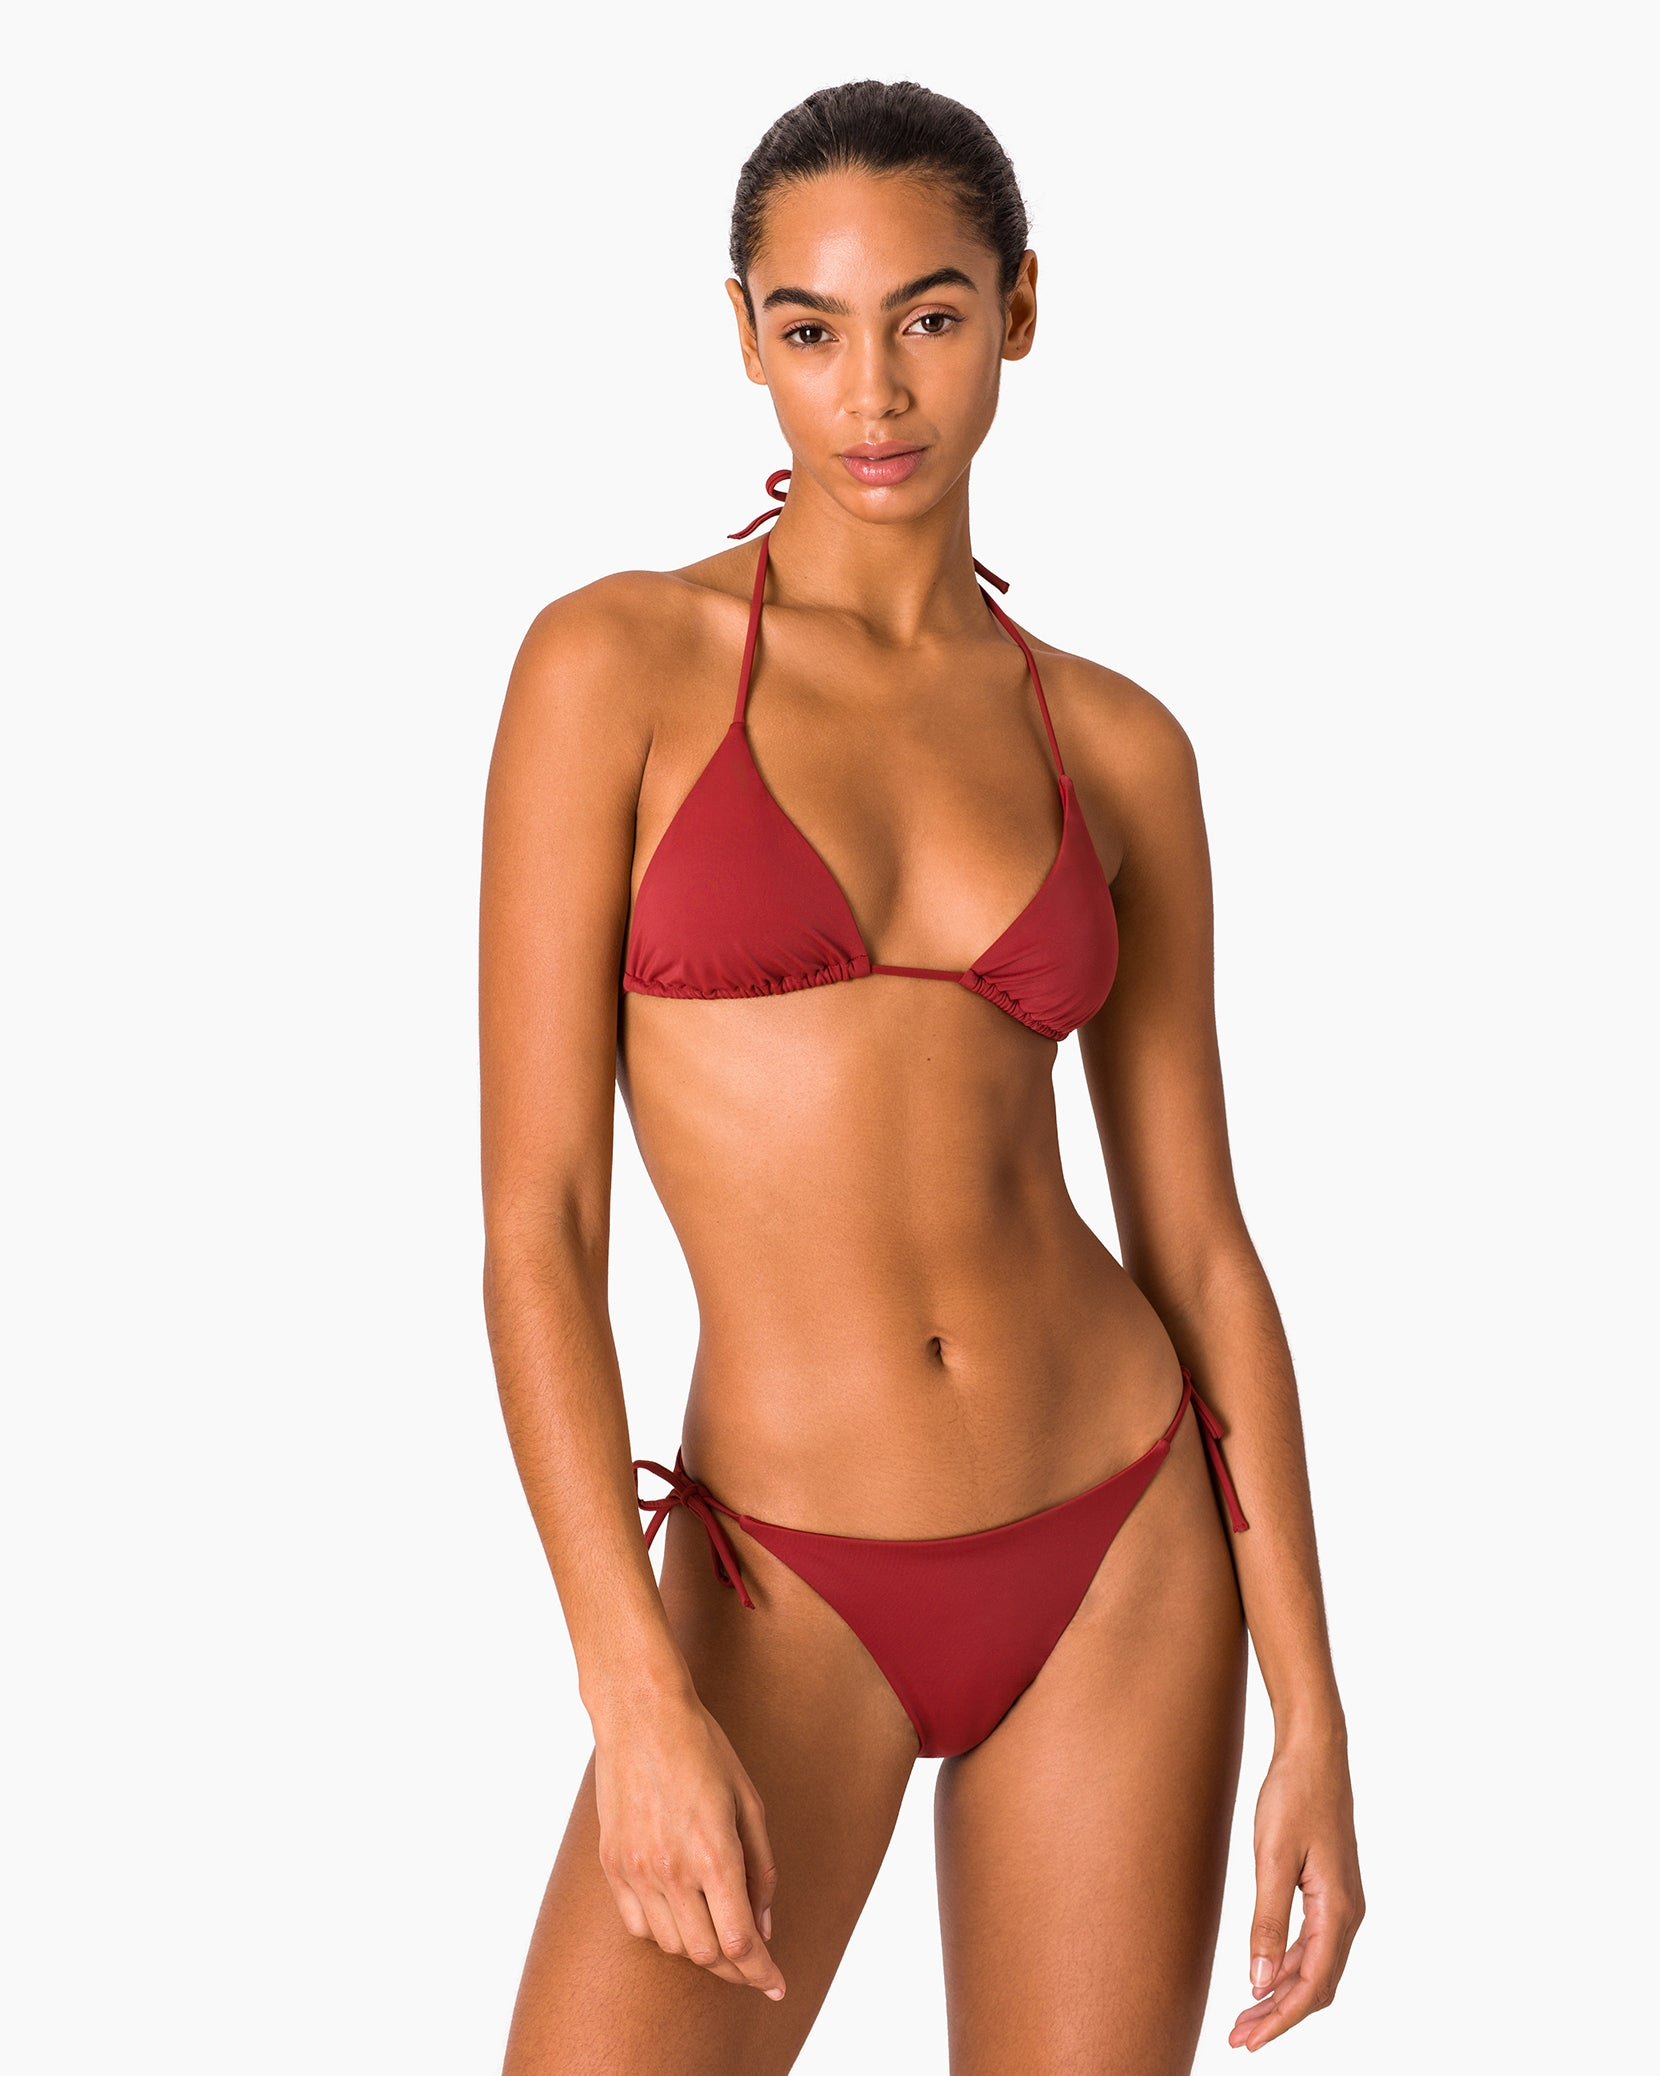 Megan Bikini Top in Deep Red - 6 - Onia